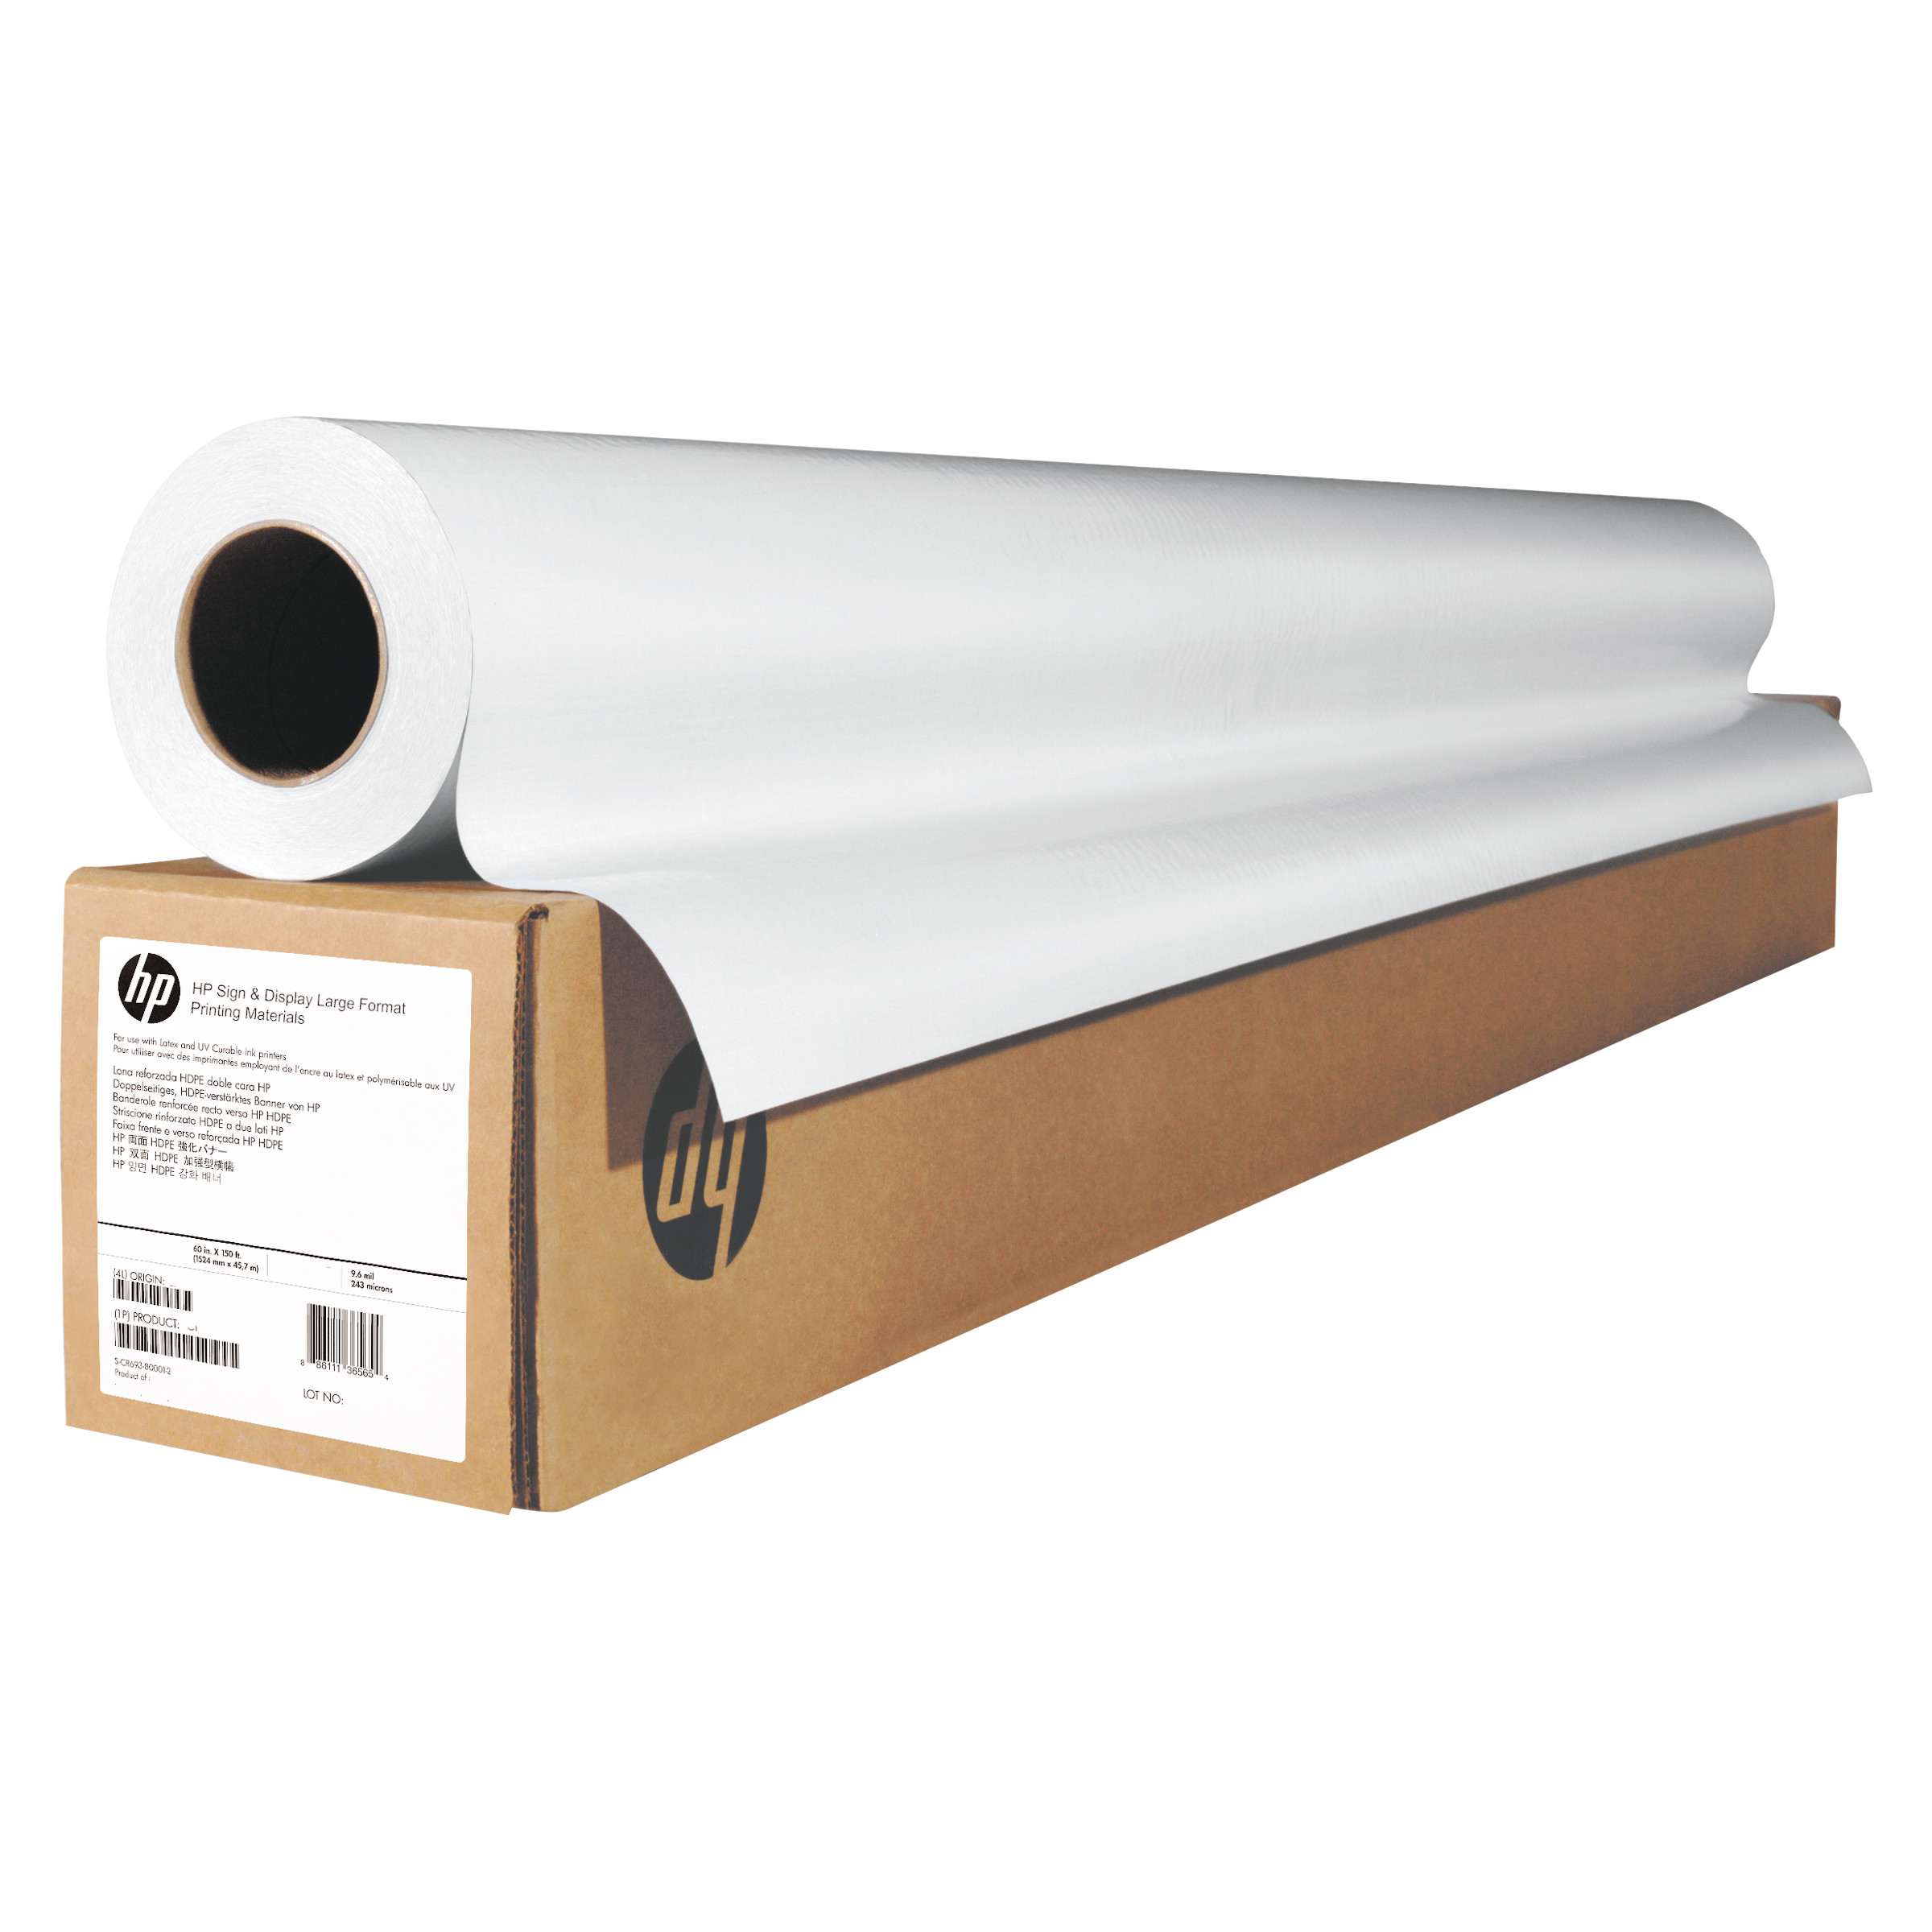 "HP Wide Format Pro Matte Canvas Paper Roll, 42"" x 50 ft, 16 mil, White"